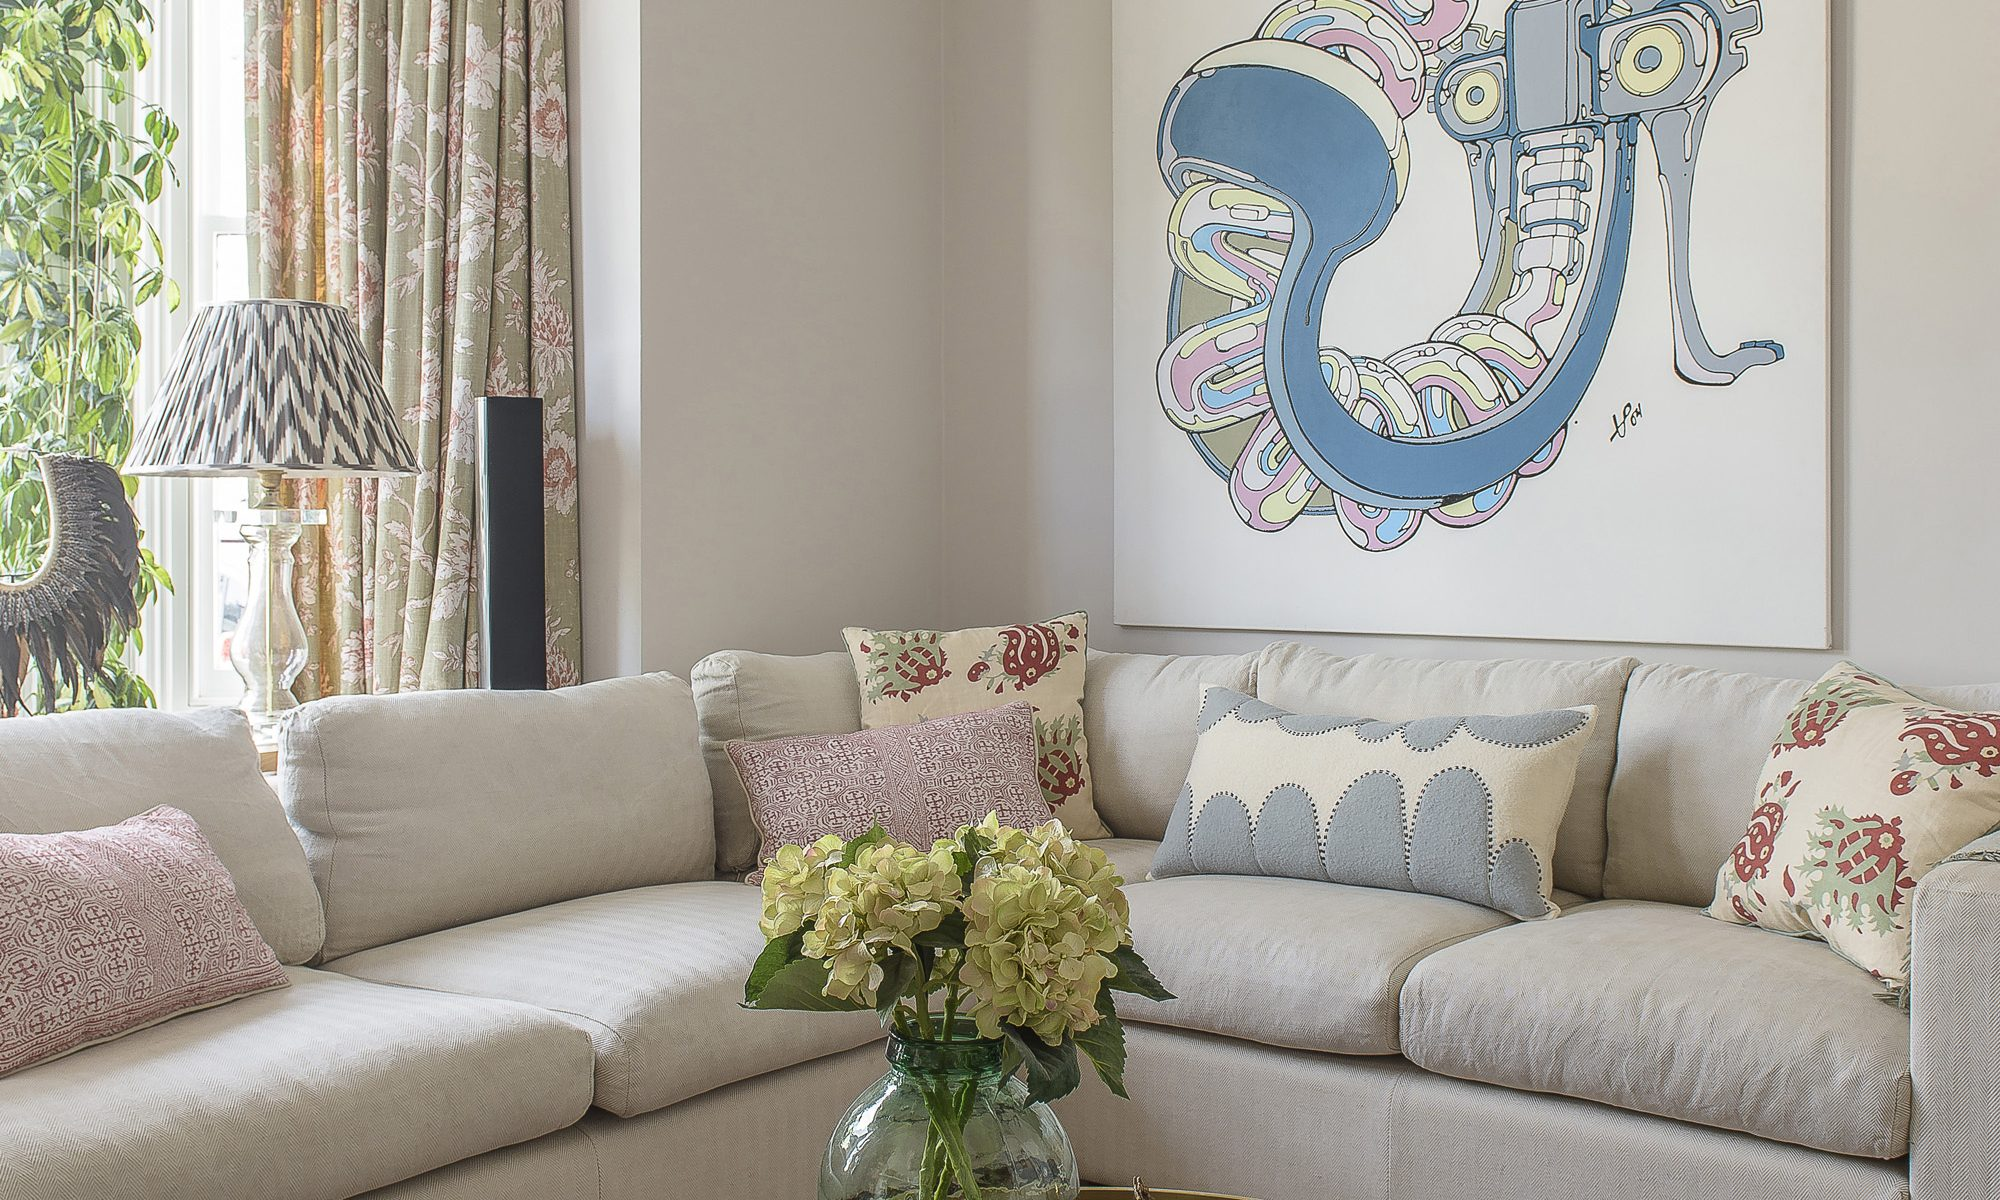 Pale blues and pinks that feature in a corkscrew print by London artist Tommy Penton in the sitting room are picked out in the room's soft furnishings. The cushions are from the Haines Collection and Fox Murray Home – a local lady who makes amazing, huge wool cushions